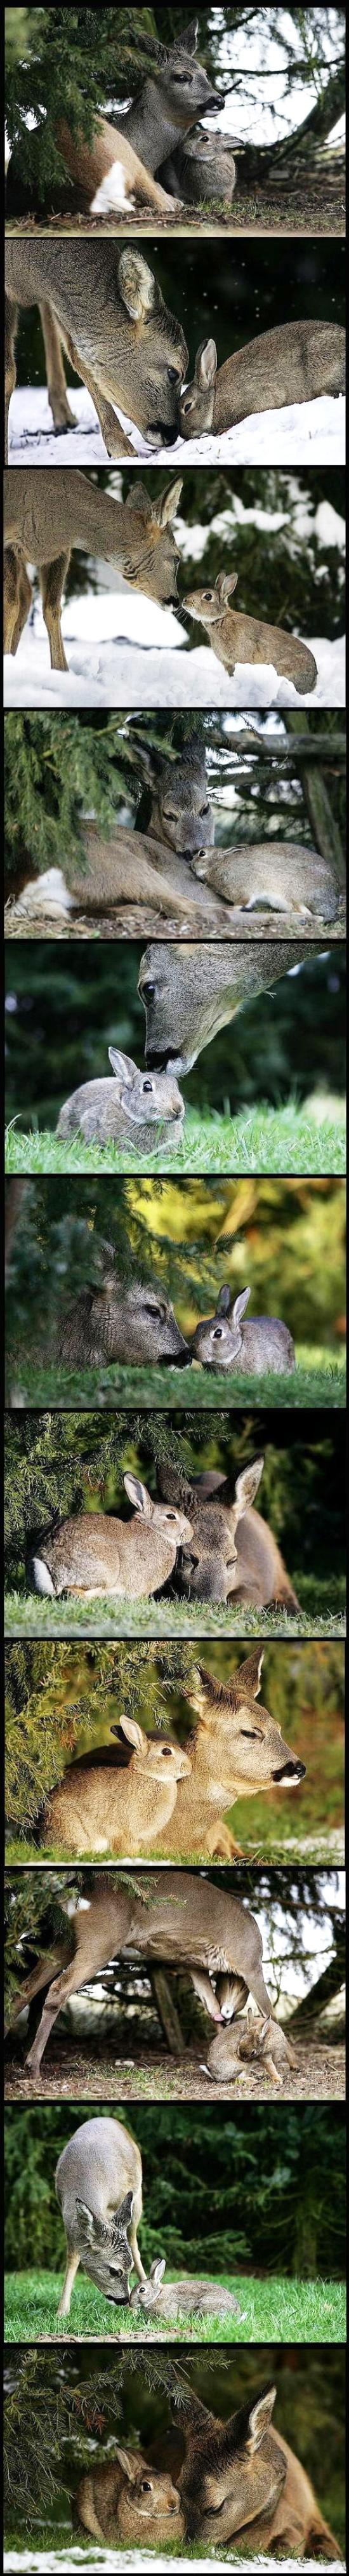 friends-rabbit-deer